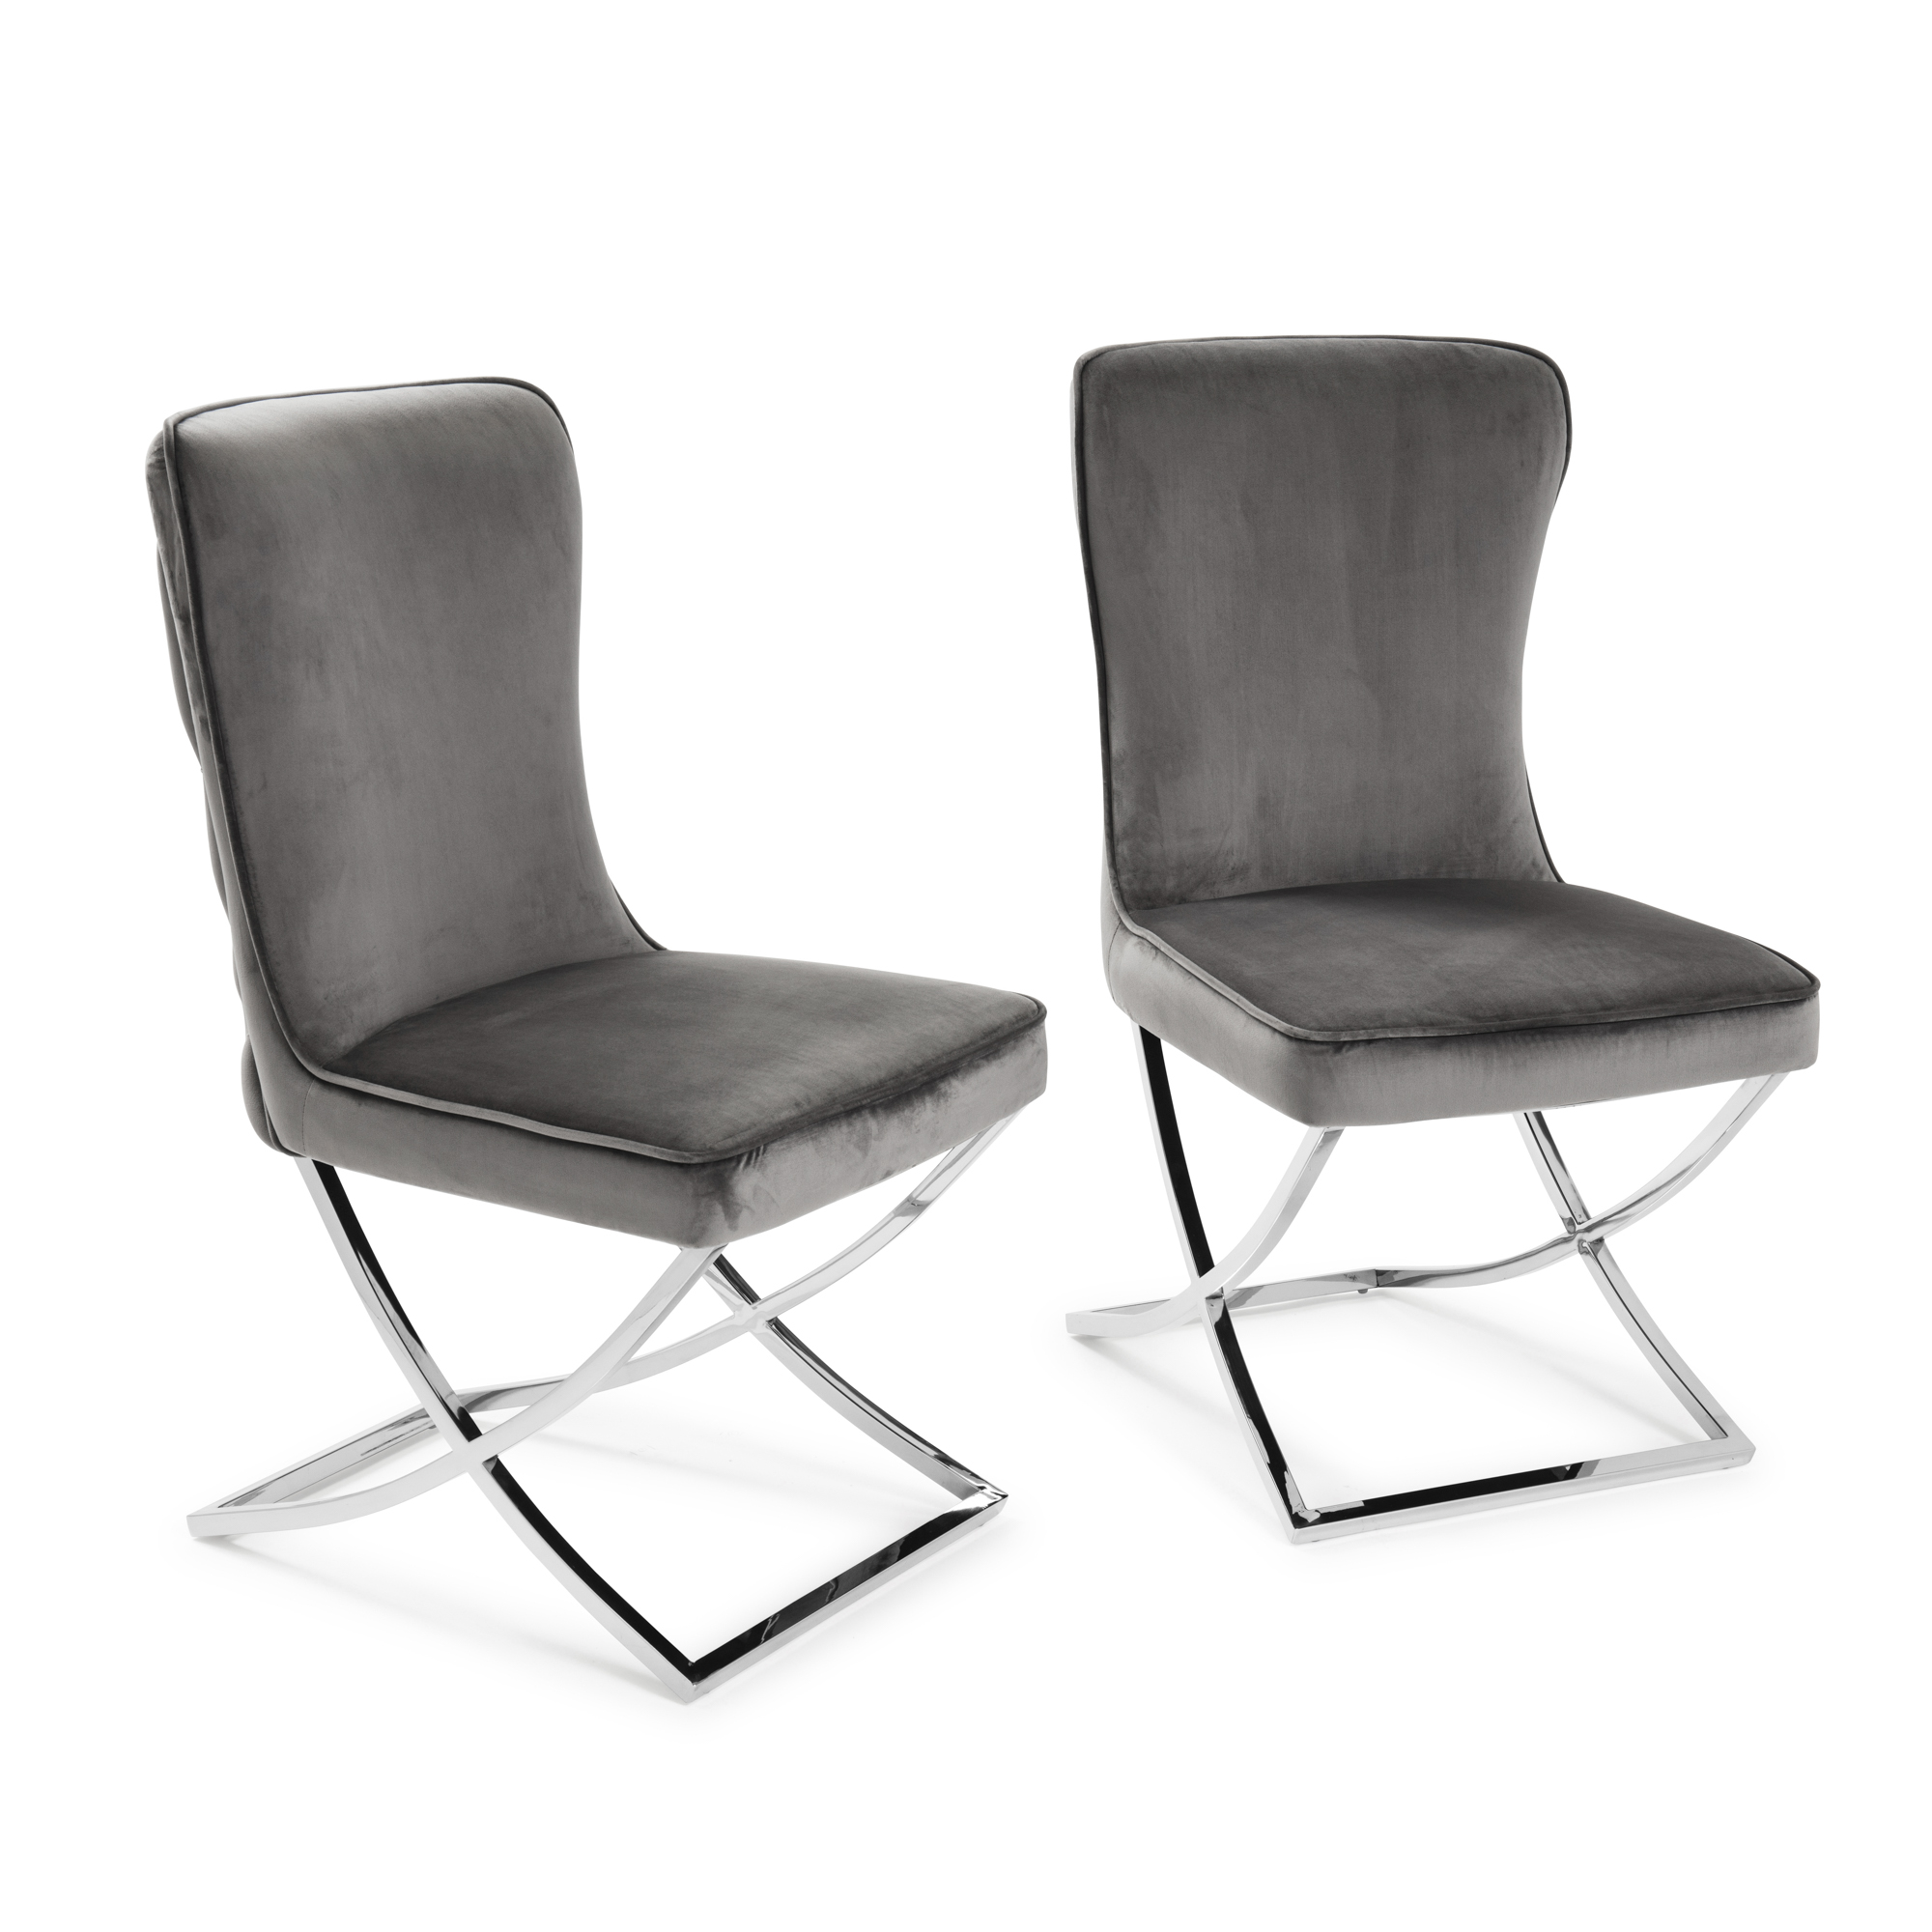 Pair of Cheshire Grey Brushed Velvet Dining Chair with a Stainless Steel Cross Leg